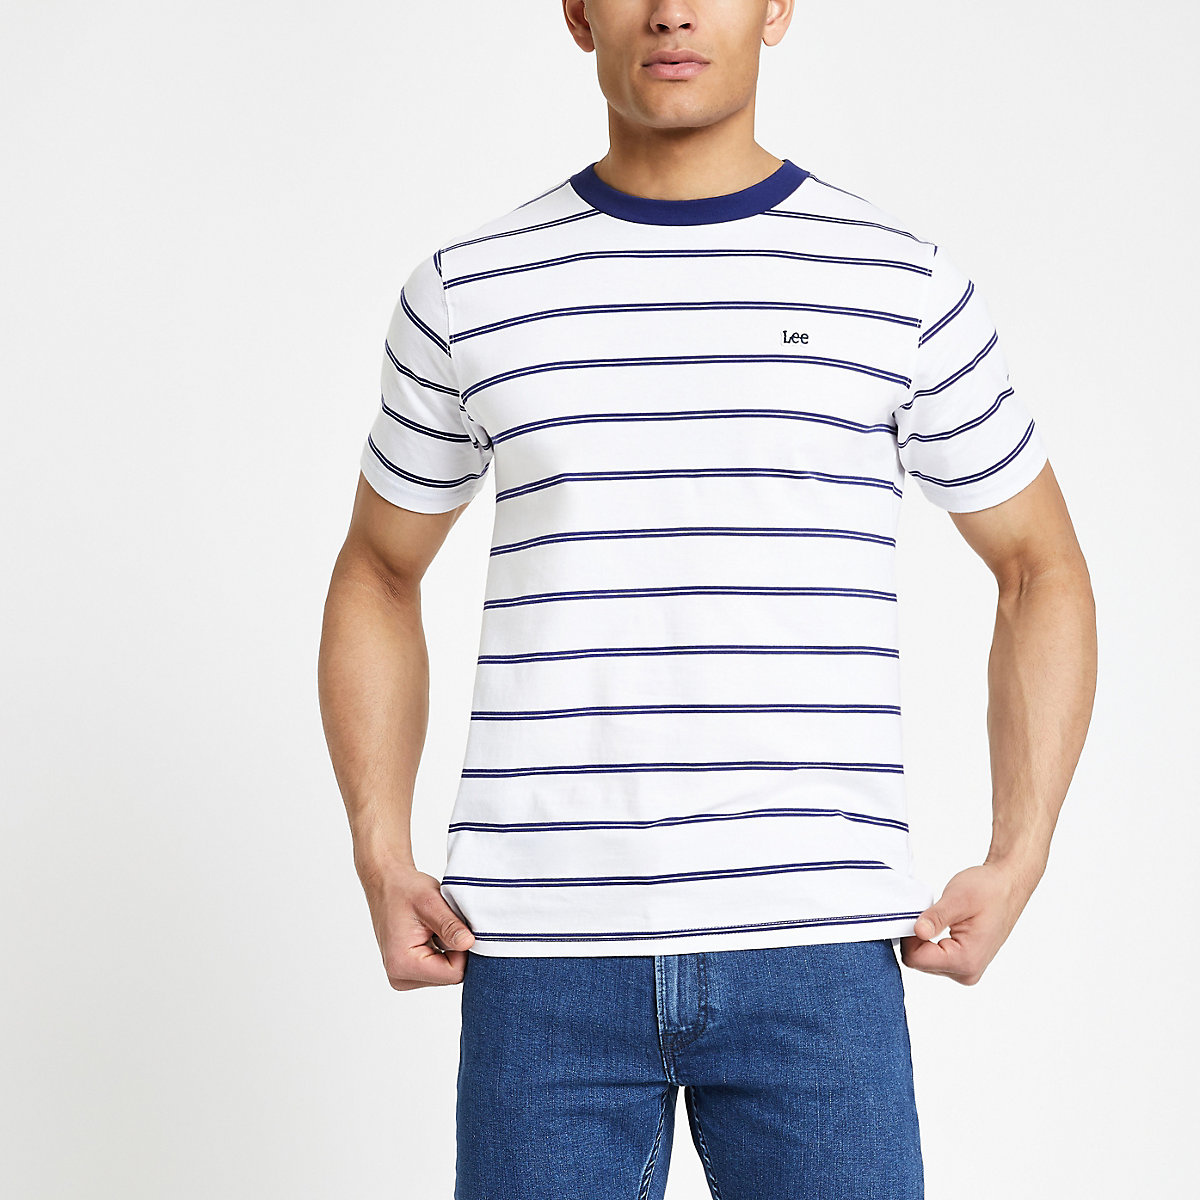 Lee white stripe T-shirt